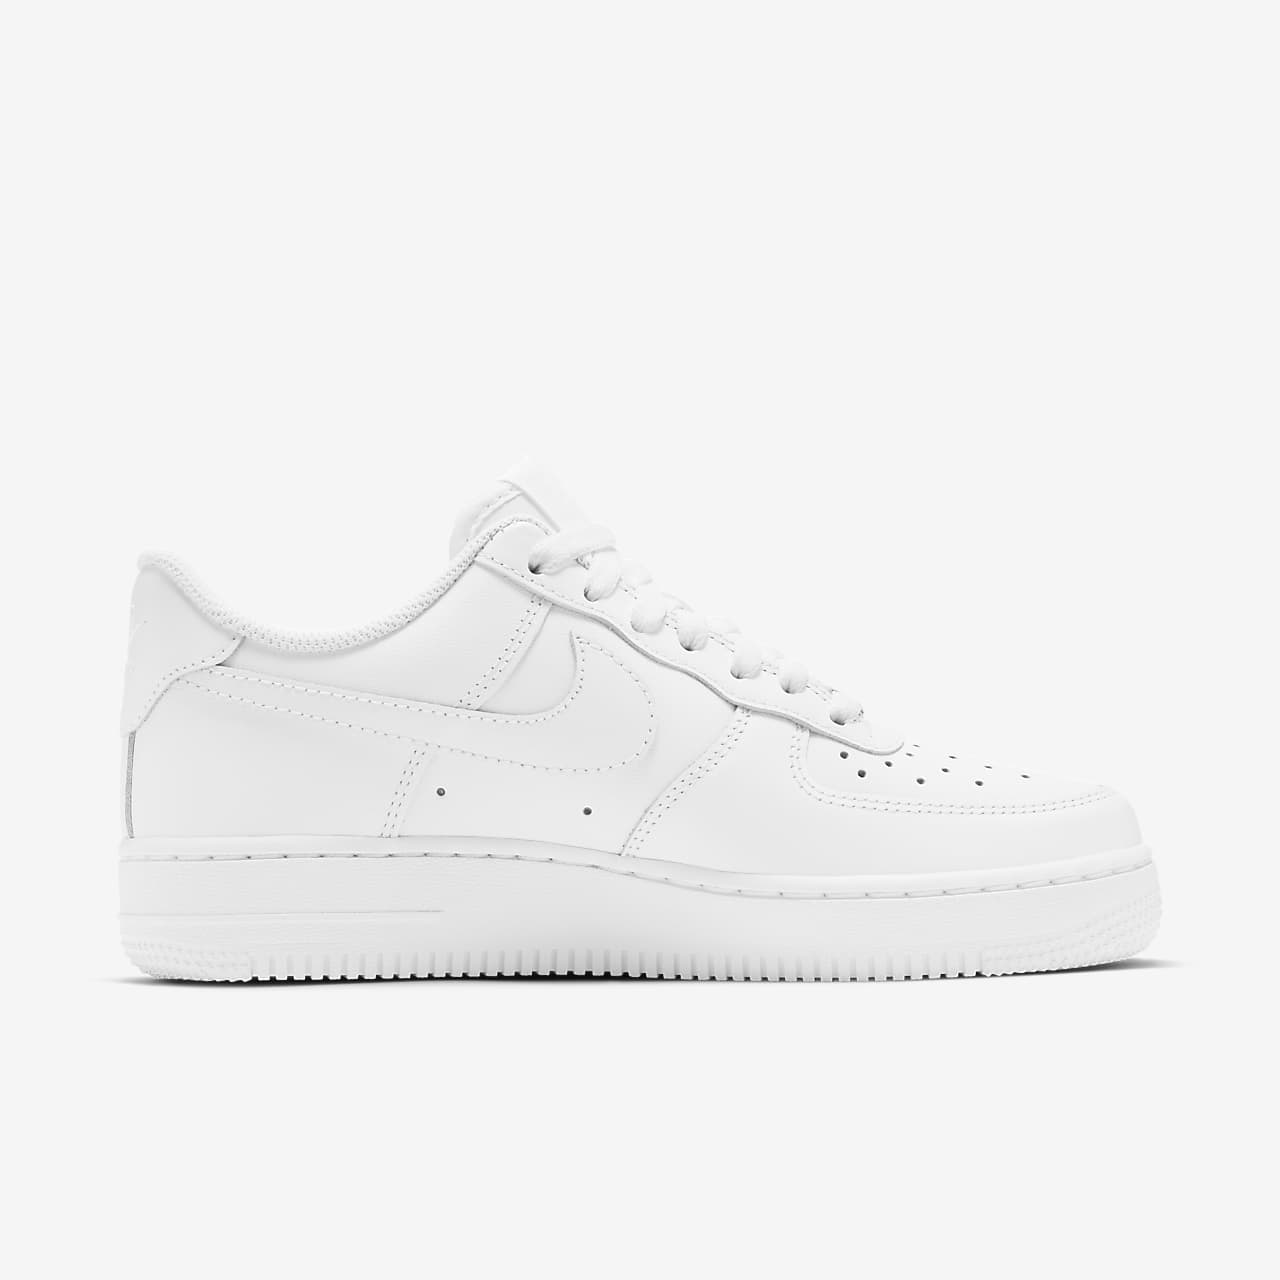 nike air force 1 107 nz